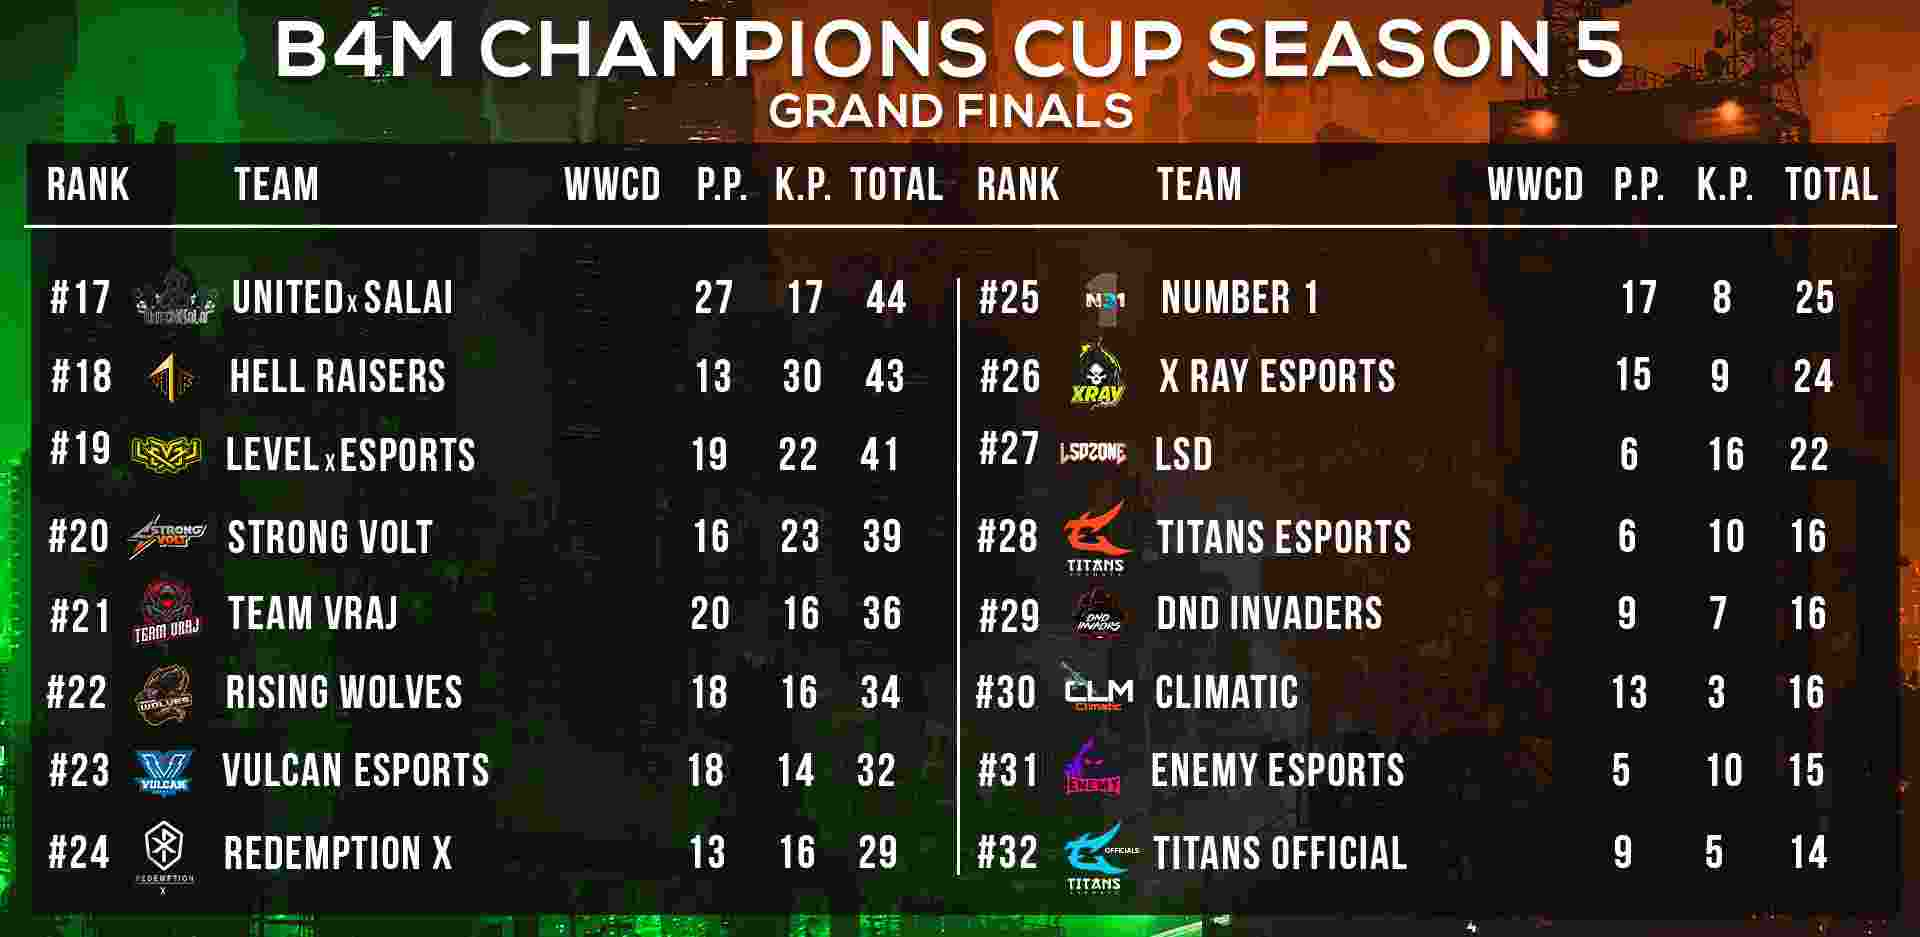 B4M Champions Cup Season 5 Grand Finals Overall Standings